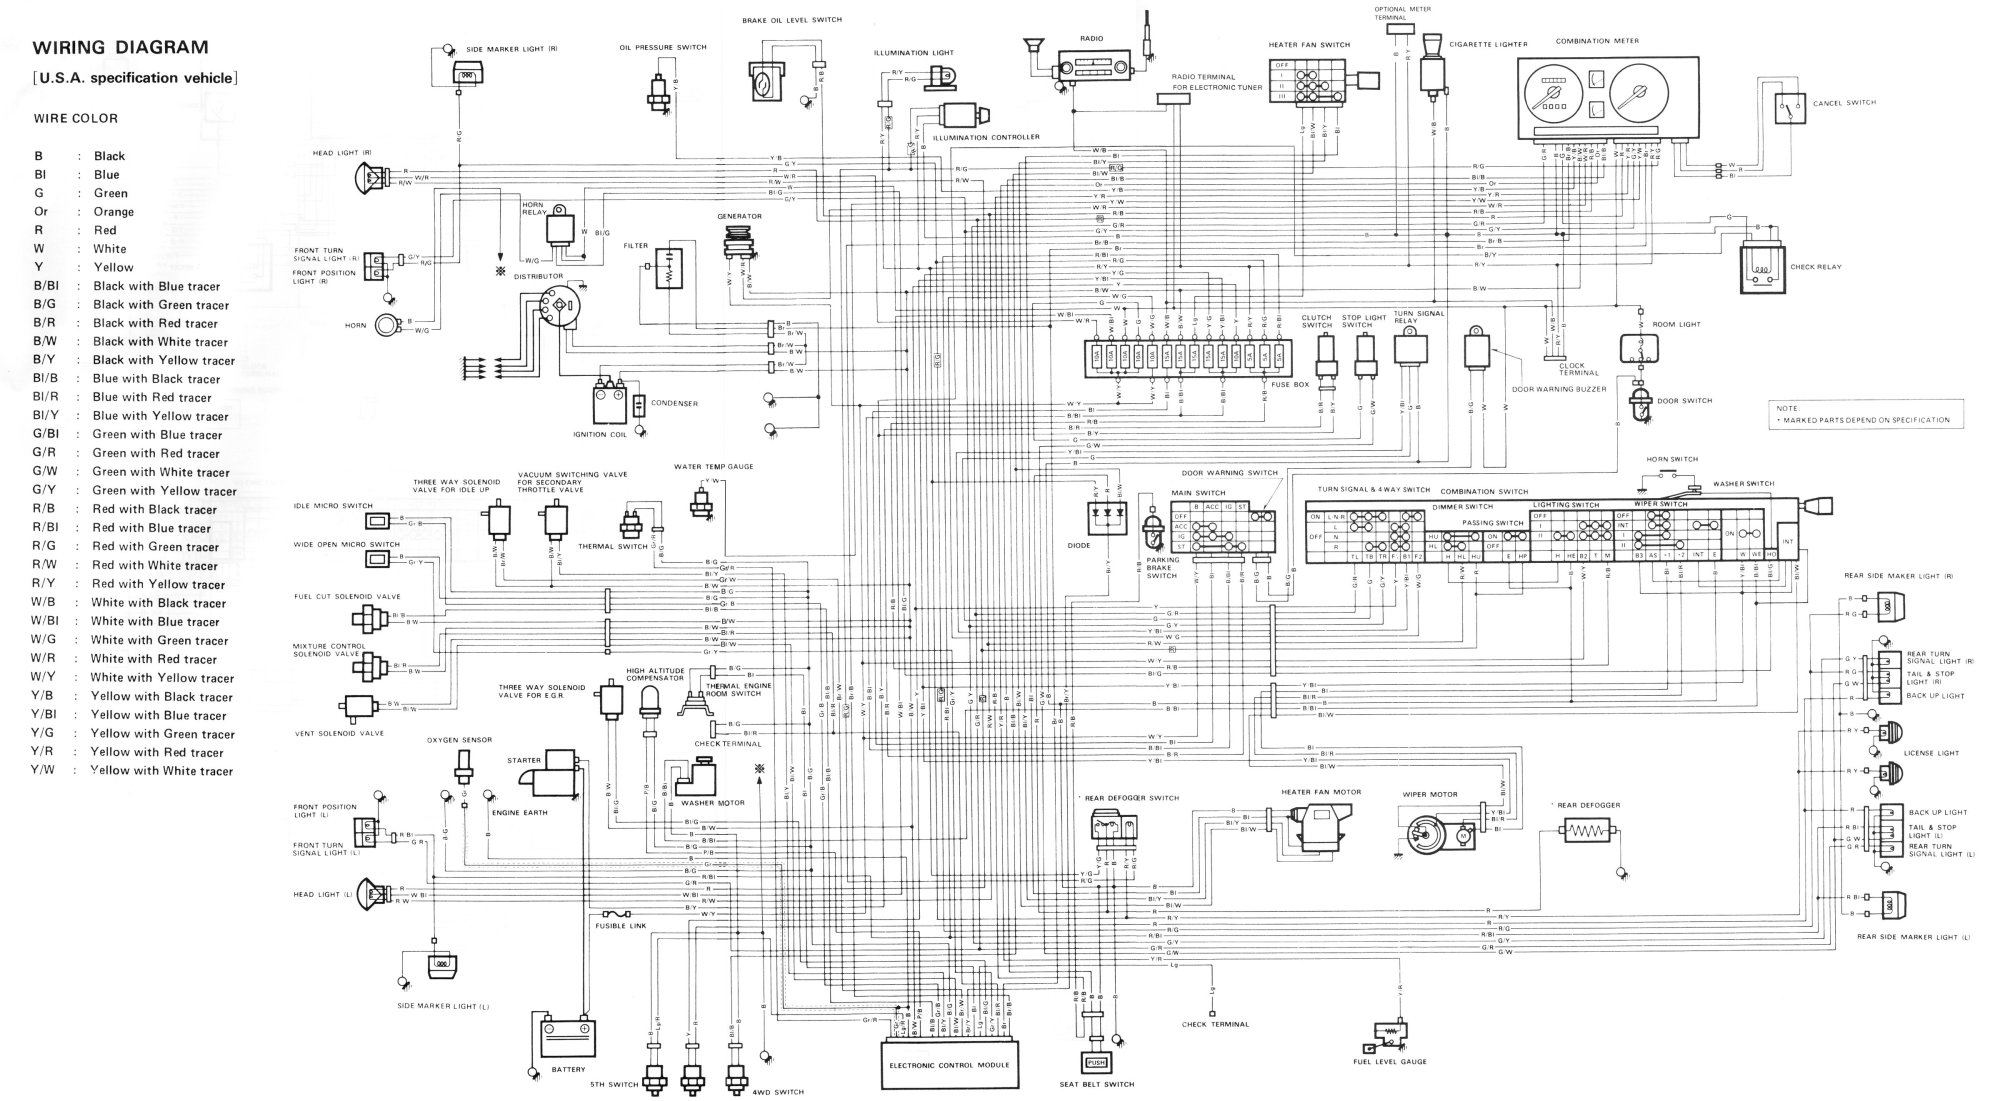 hight resolution of suzuki samurai wiring diagrams zuki offroad suzuki samurai transmission diagram 1990 suzuki samurai wiring diagram